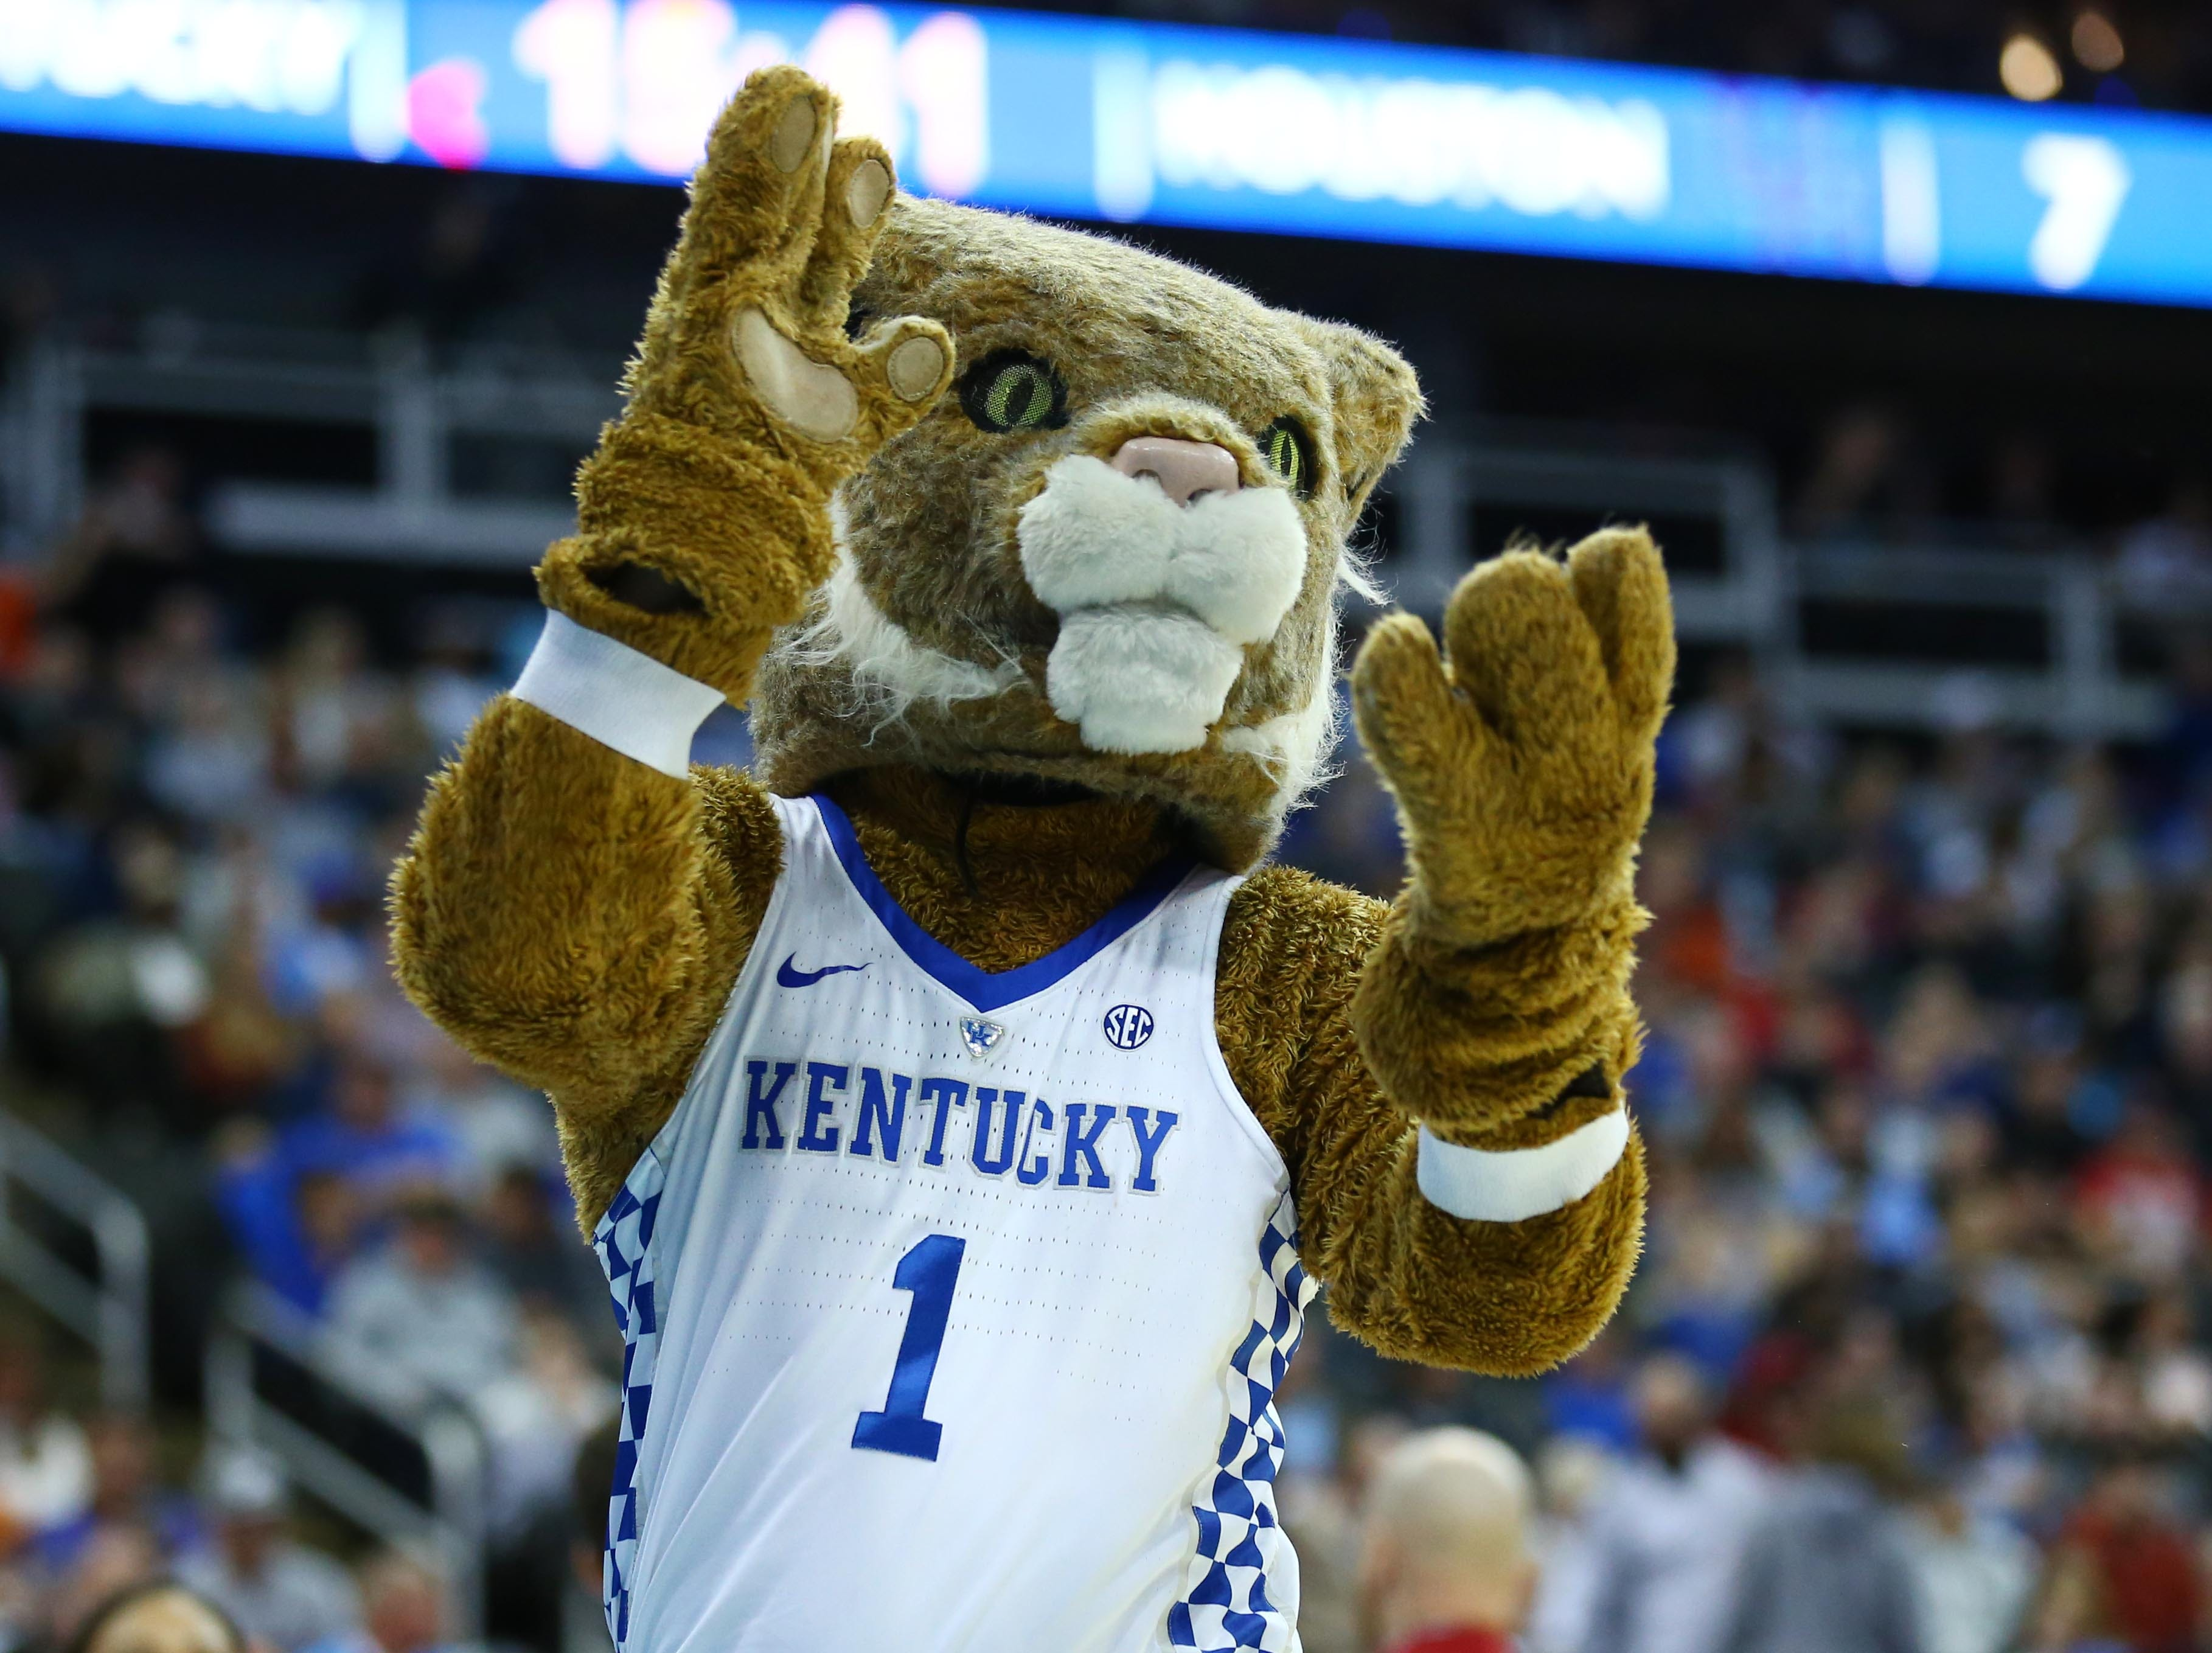 Sweet 16: The Kentucky Wildcats mascot performs during the first half against the Houston Cougars.